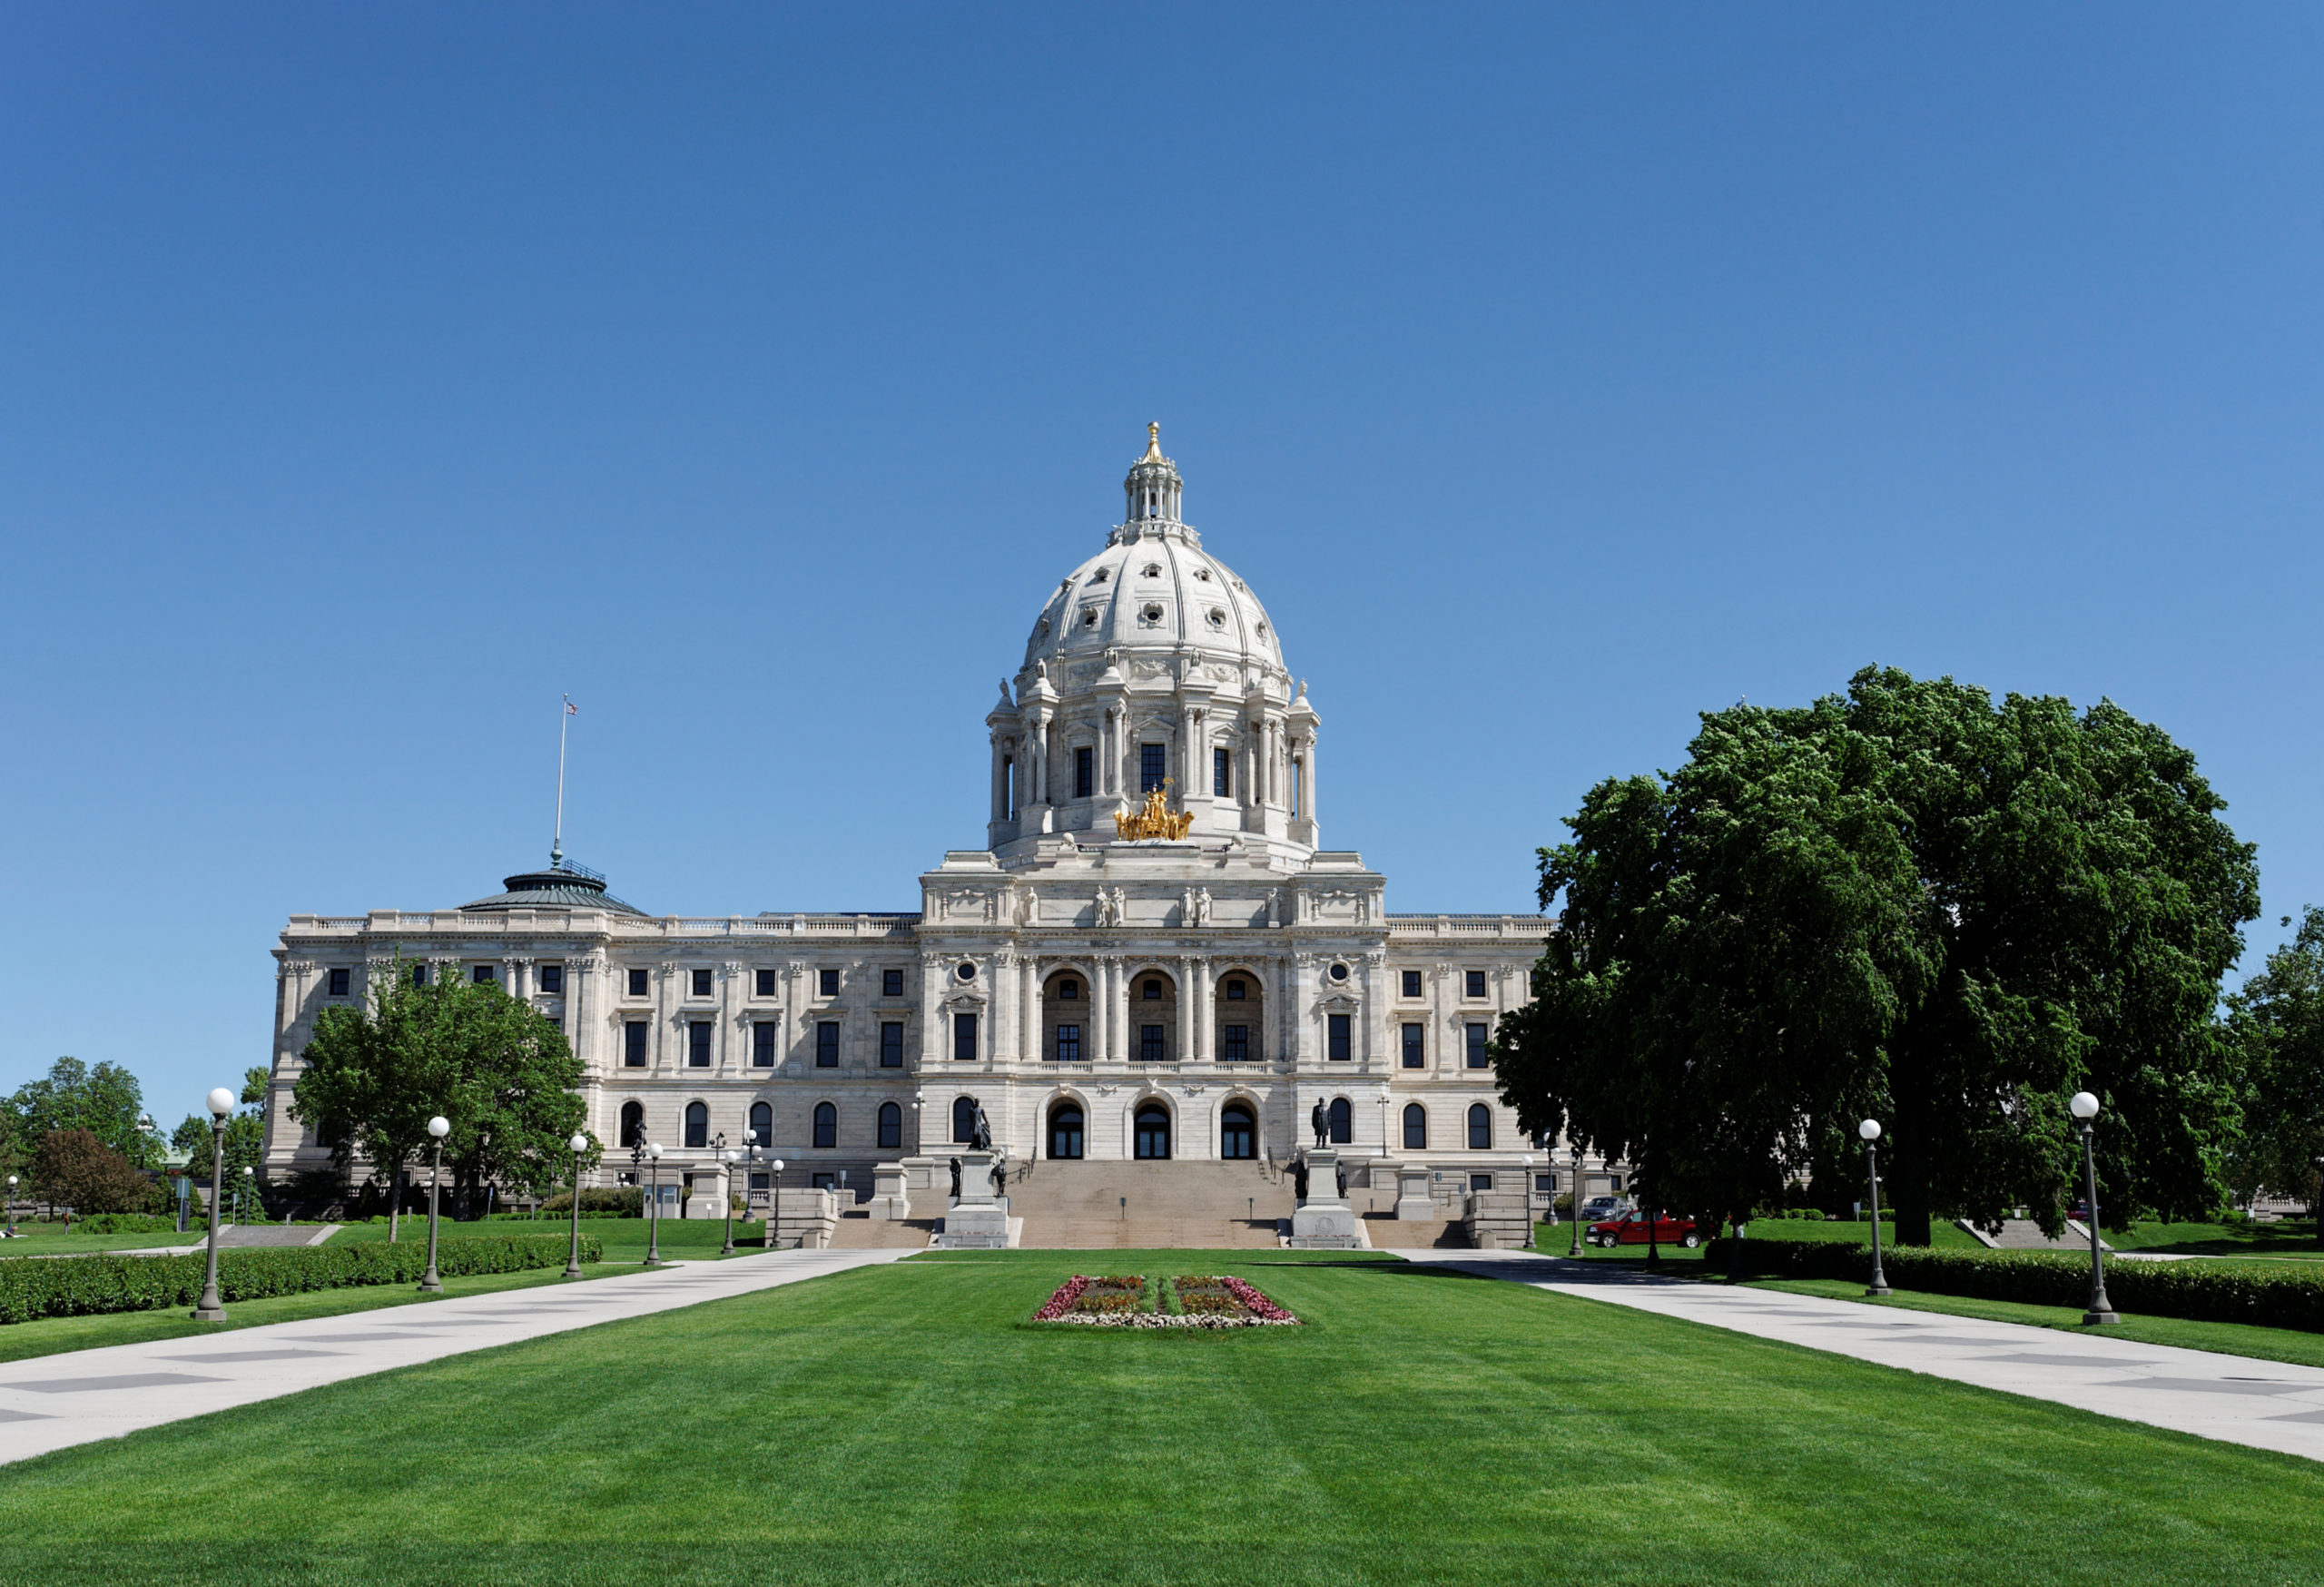 Minnesota State Capitol building and grounds